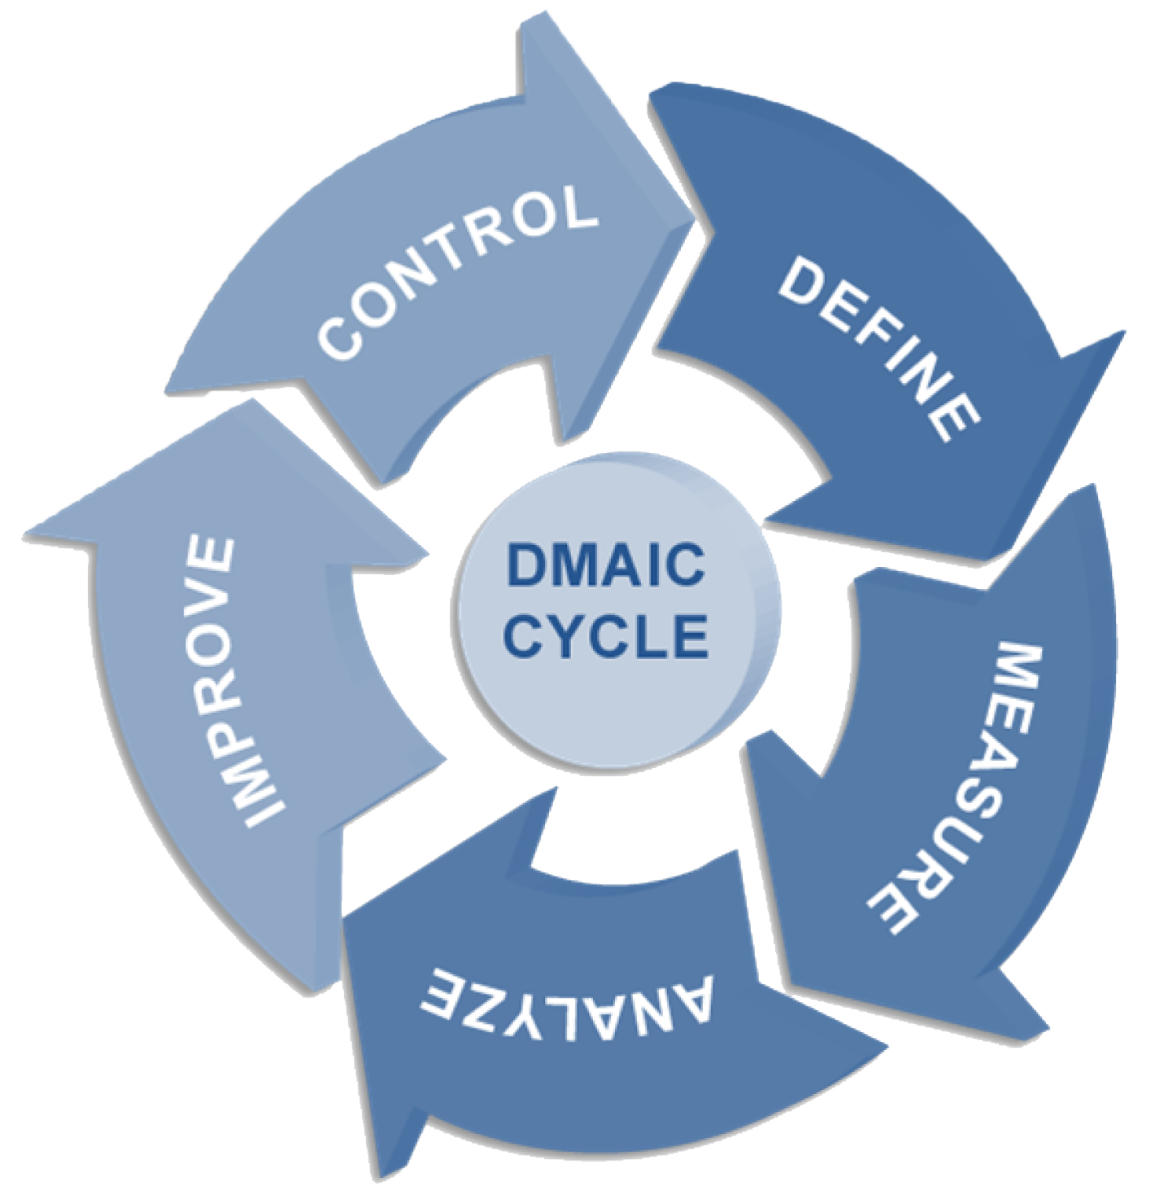 DMAIC Cycle